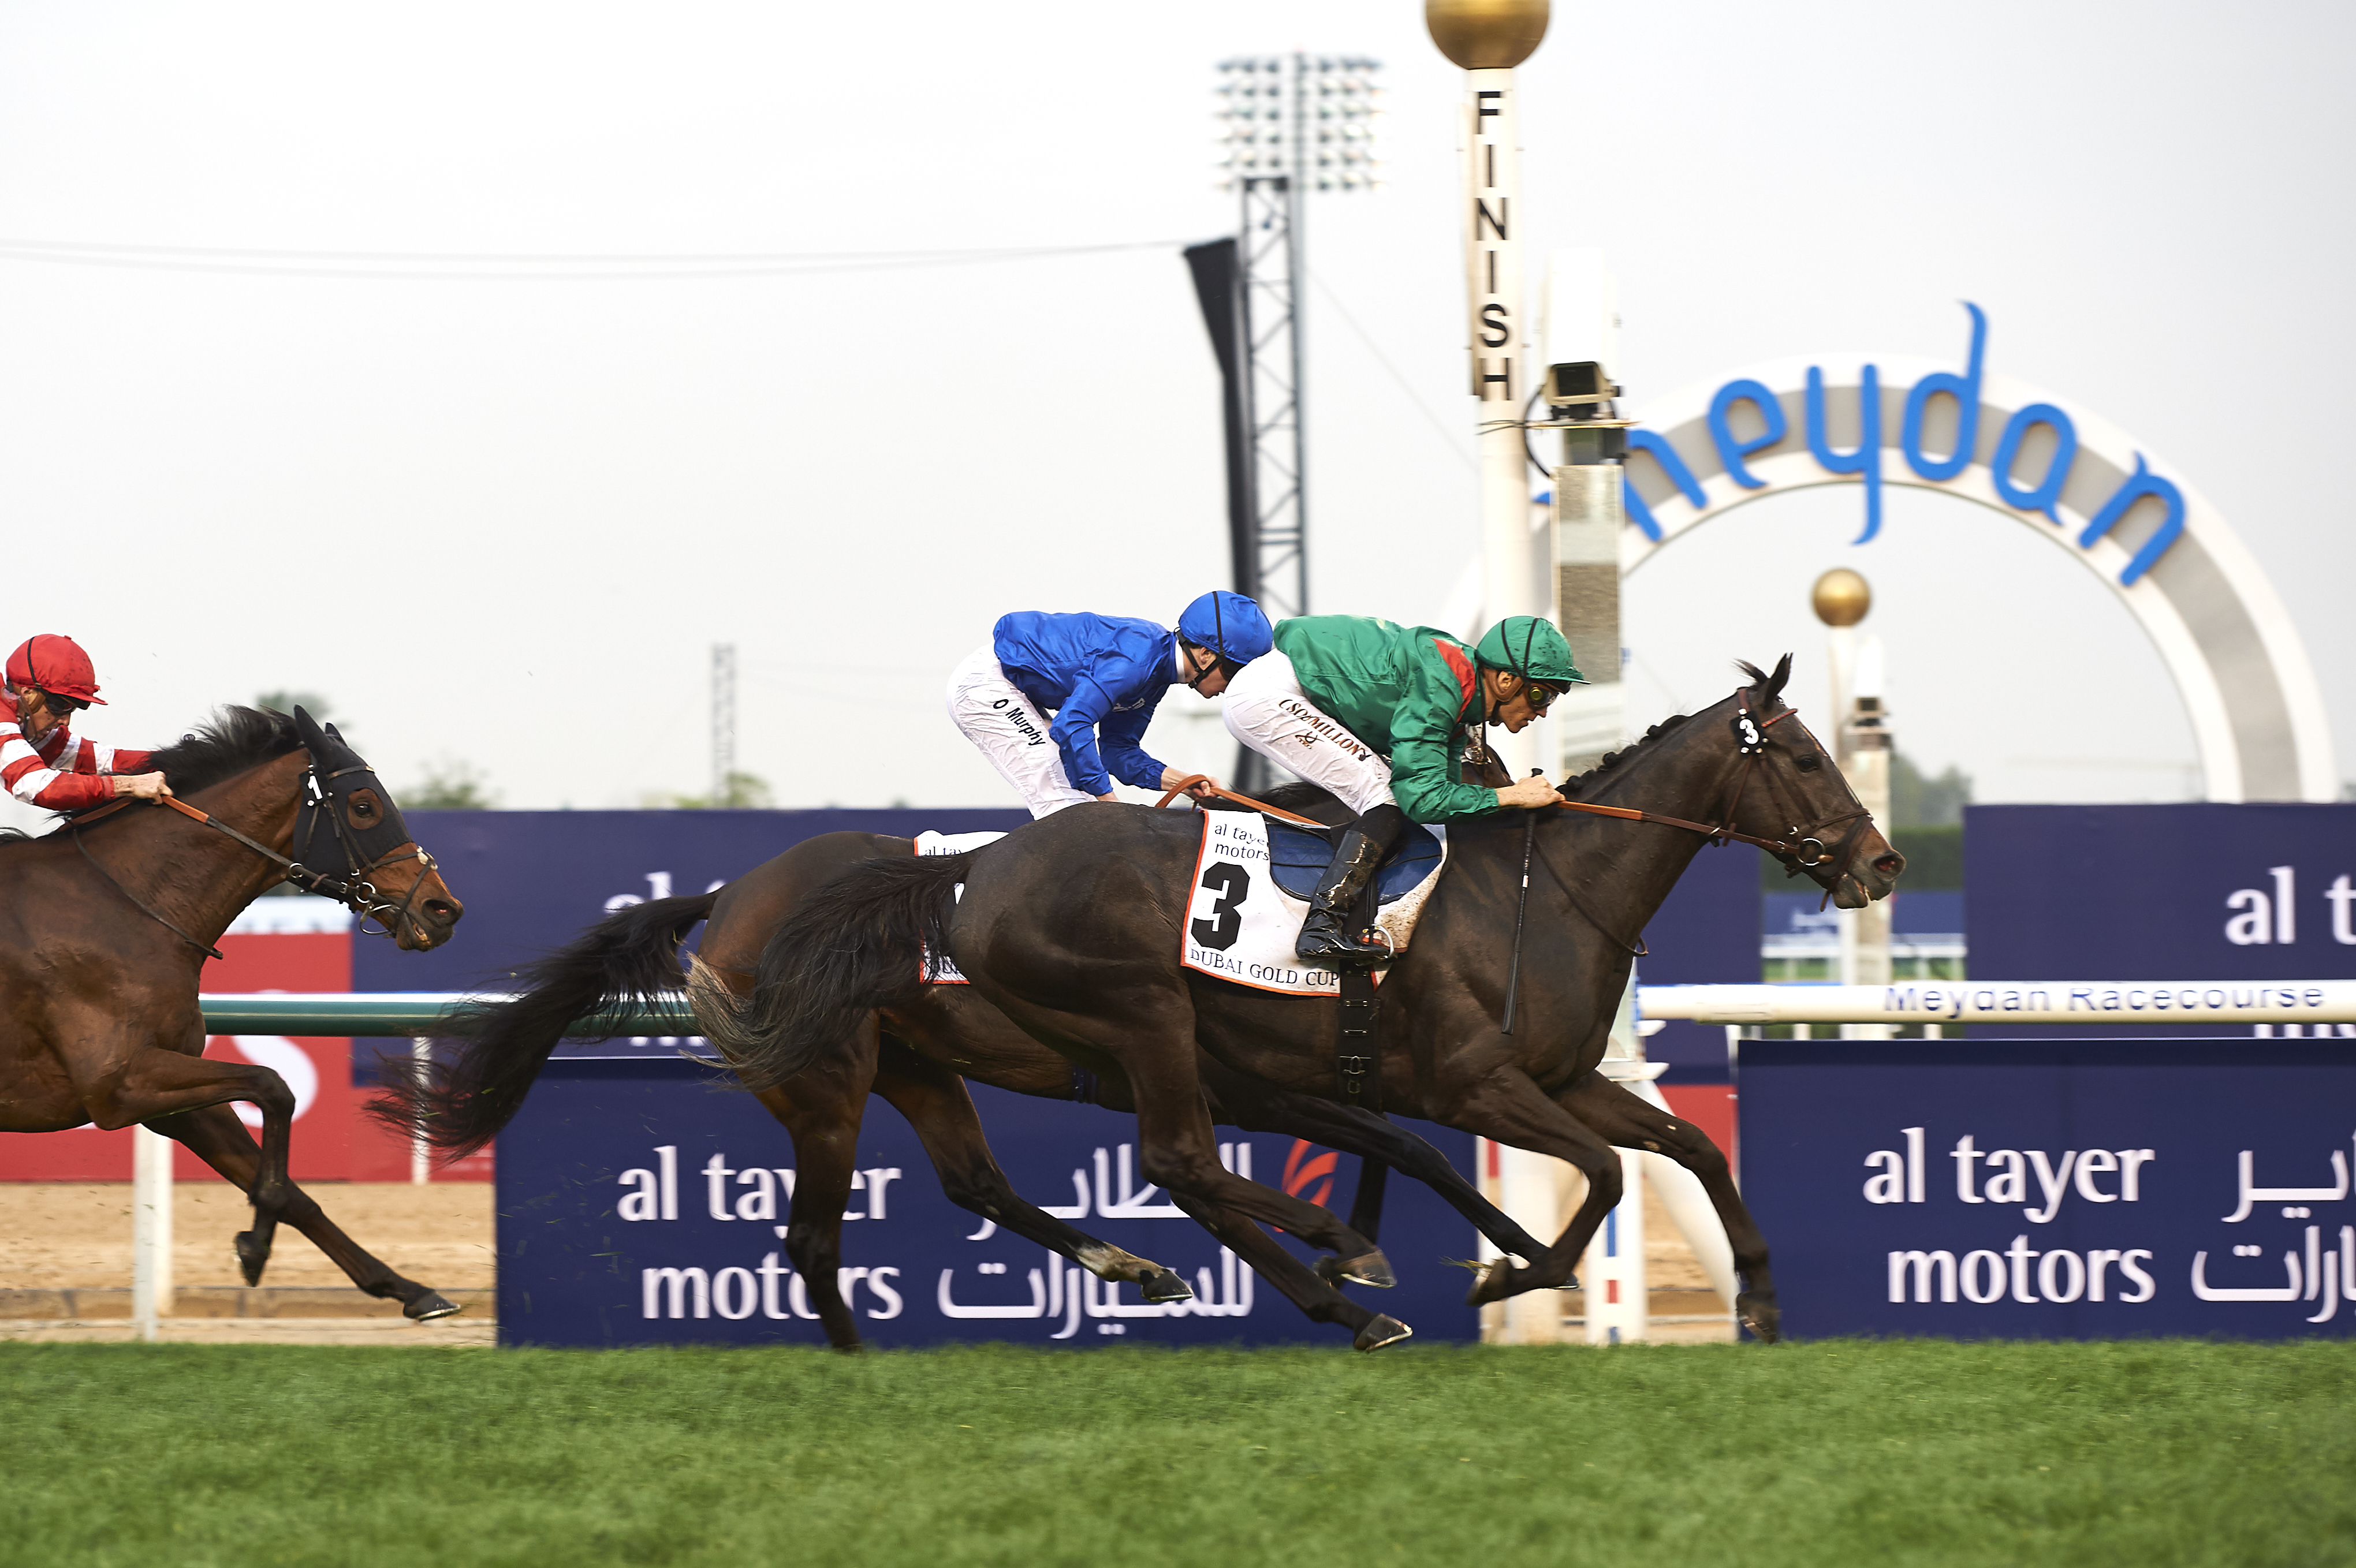 Vazirabad (FR) (Alain De Royer-Dupre -Christophe Soumillon) wins the Dubai Gold Cup Sponsored by Al Tayer Motors at the DWC at Meydan on March 25th 2017. (Credit -Dubai Racing Club , Andrew Watkins)